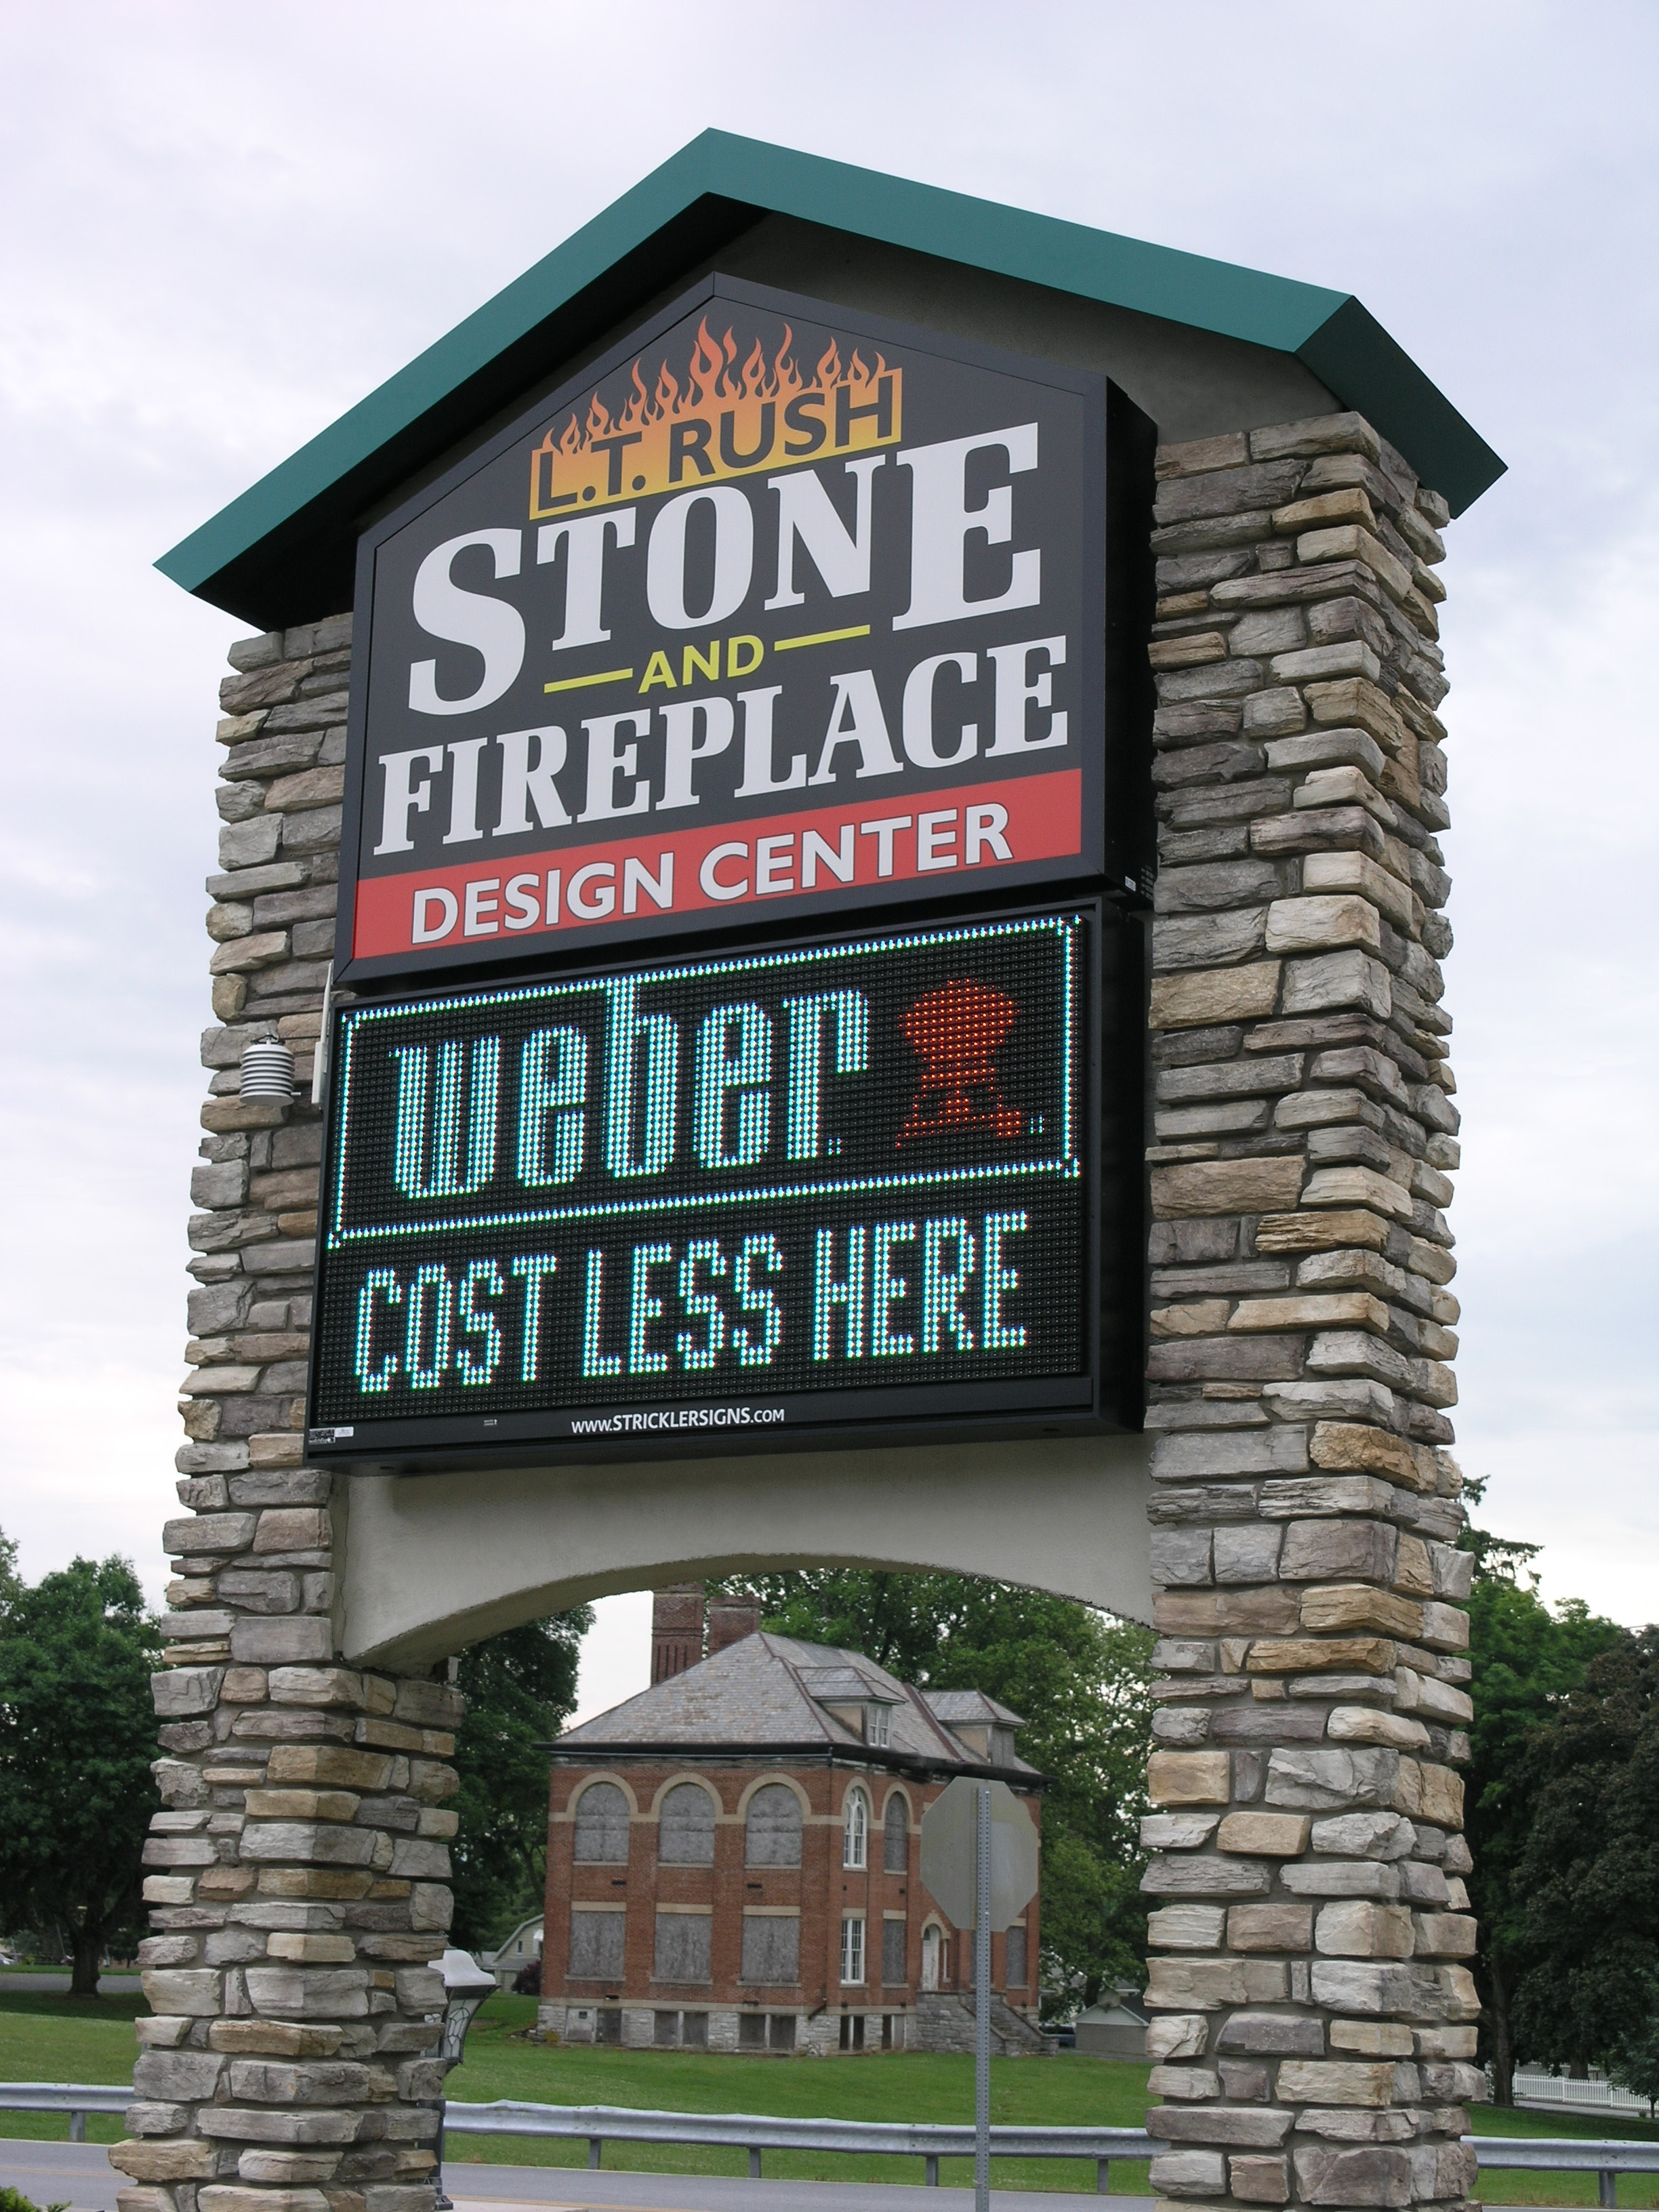 LT RUSH Stone and Fireplace - Monument w Digital Sign